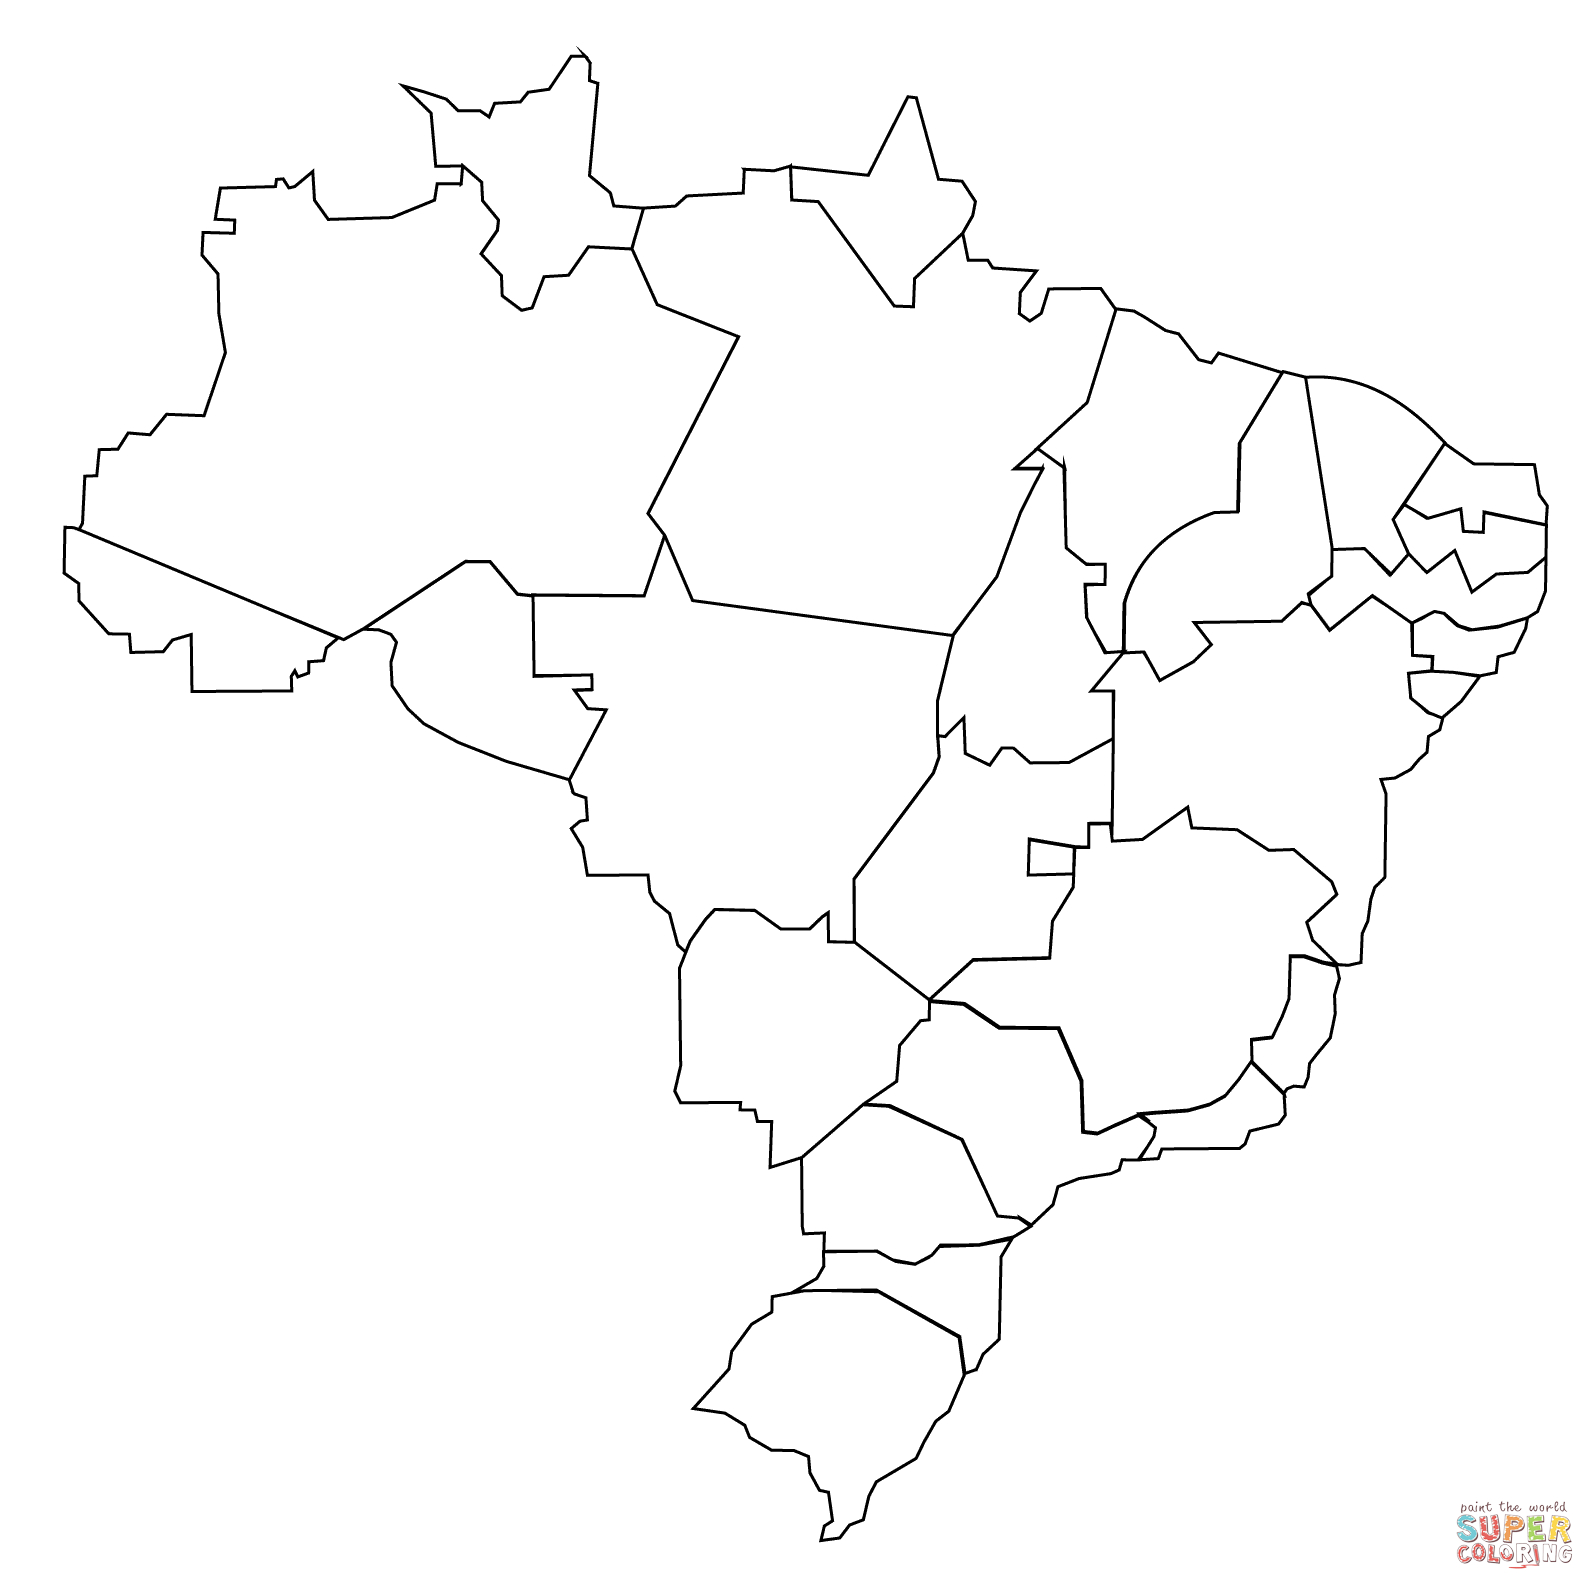 Outline Map Of Brazil With States Coloring Page | Free Printable - Free Printable Map Of Brazil